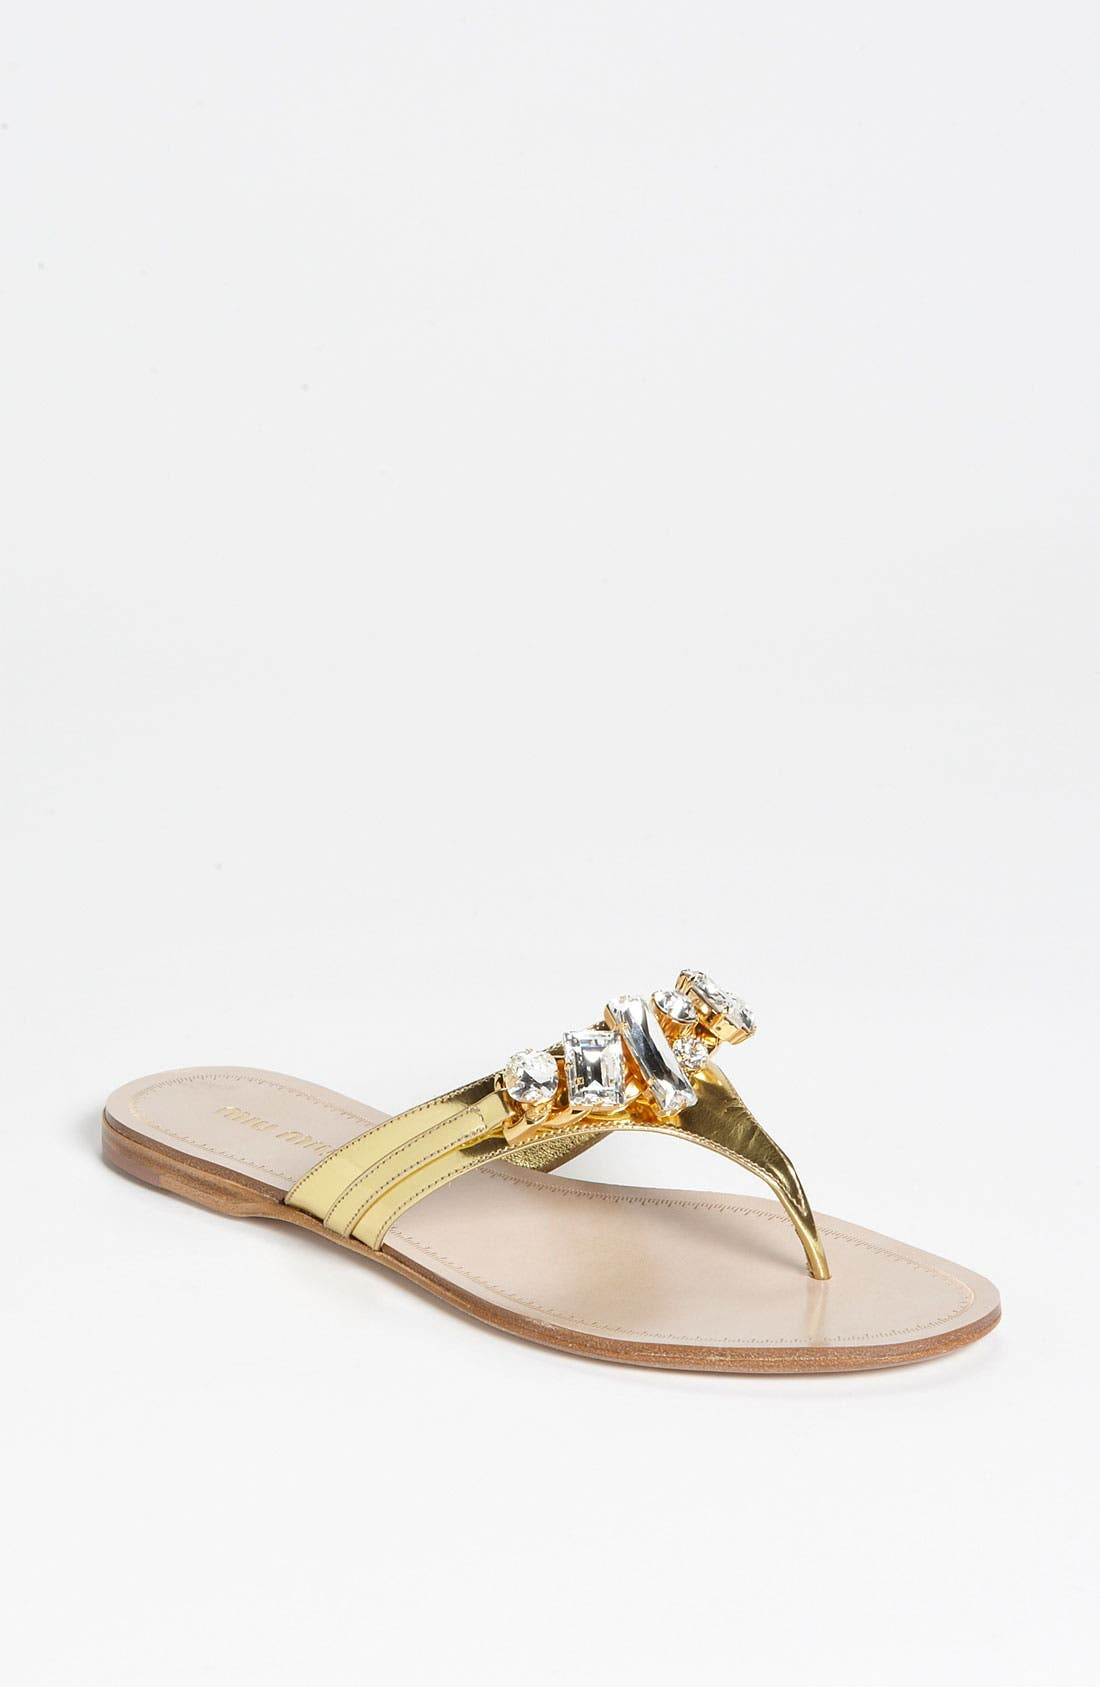 Alternate Image 1 Selected - Miu Miu Jeweled Thong Sandal